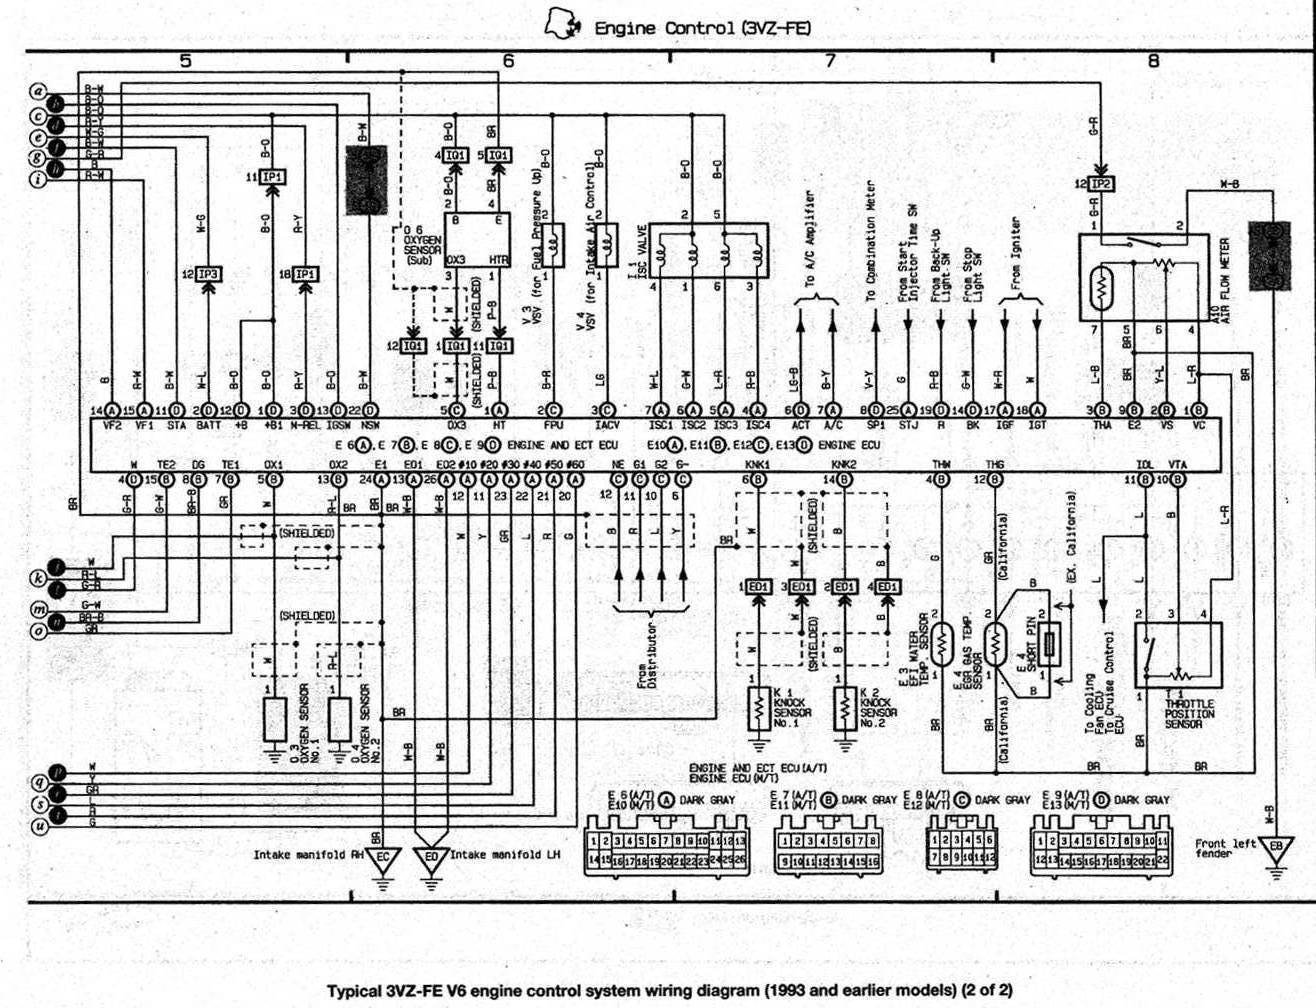 2010112093843_3vzfe24li 3sgte wiring diagram wiring diagram symbols \u2022 free wiring diagrams 1zz-fe ecu wiring diagram at bakdesigns.co